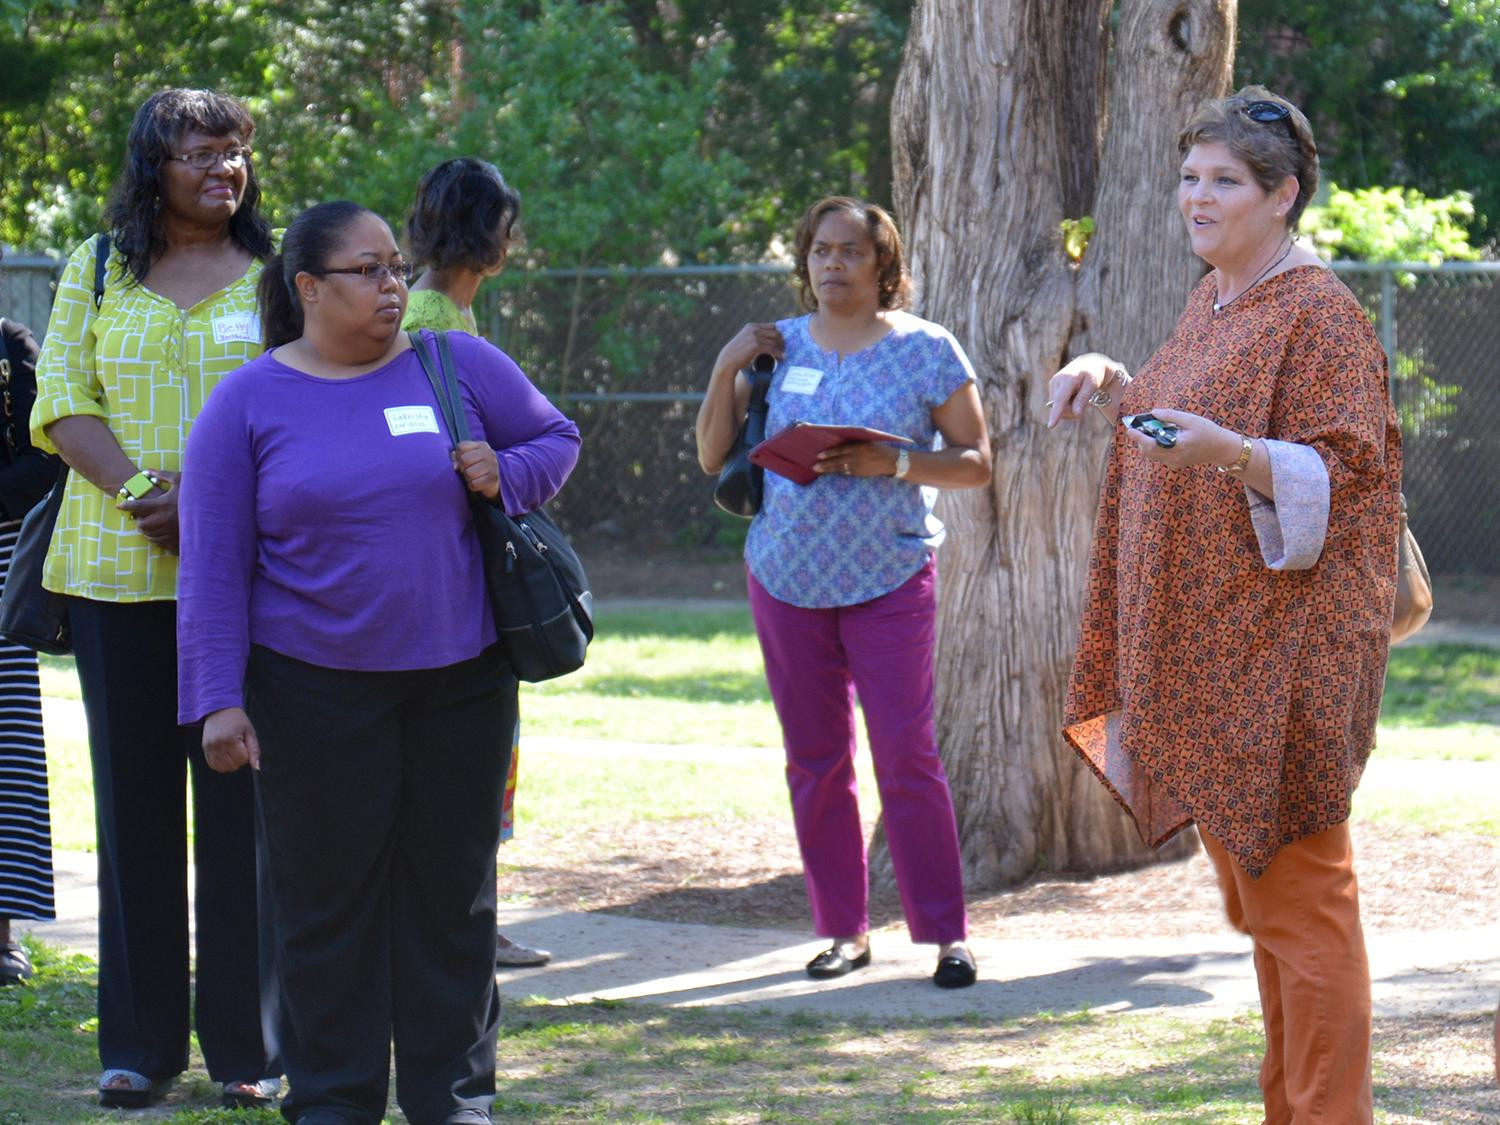 The Mississippi State University Aiken Village Preschool director Lucy Bryant, on right, led a tour of the facility and playground for a group of early care and education providers interested in quality improvements. (Submitted photo)